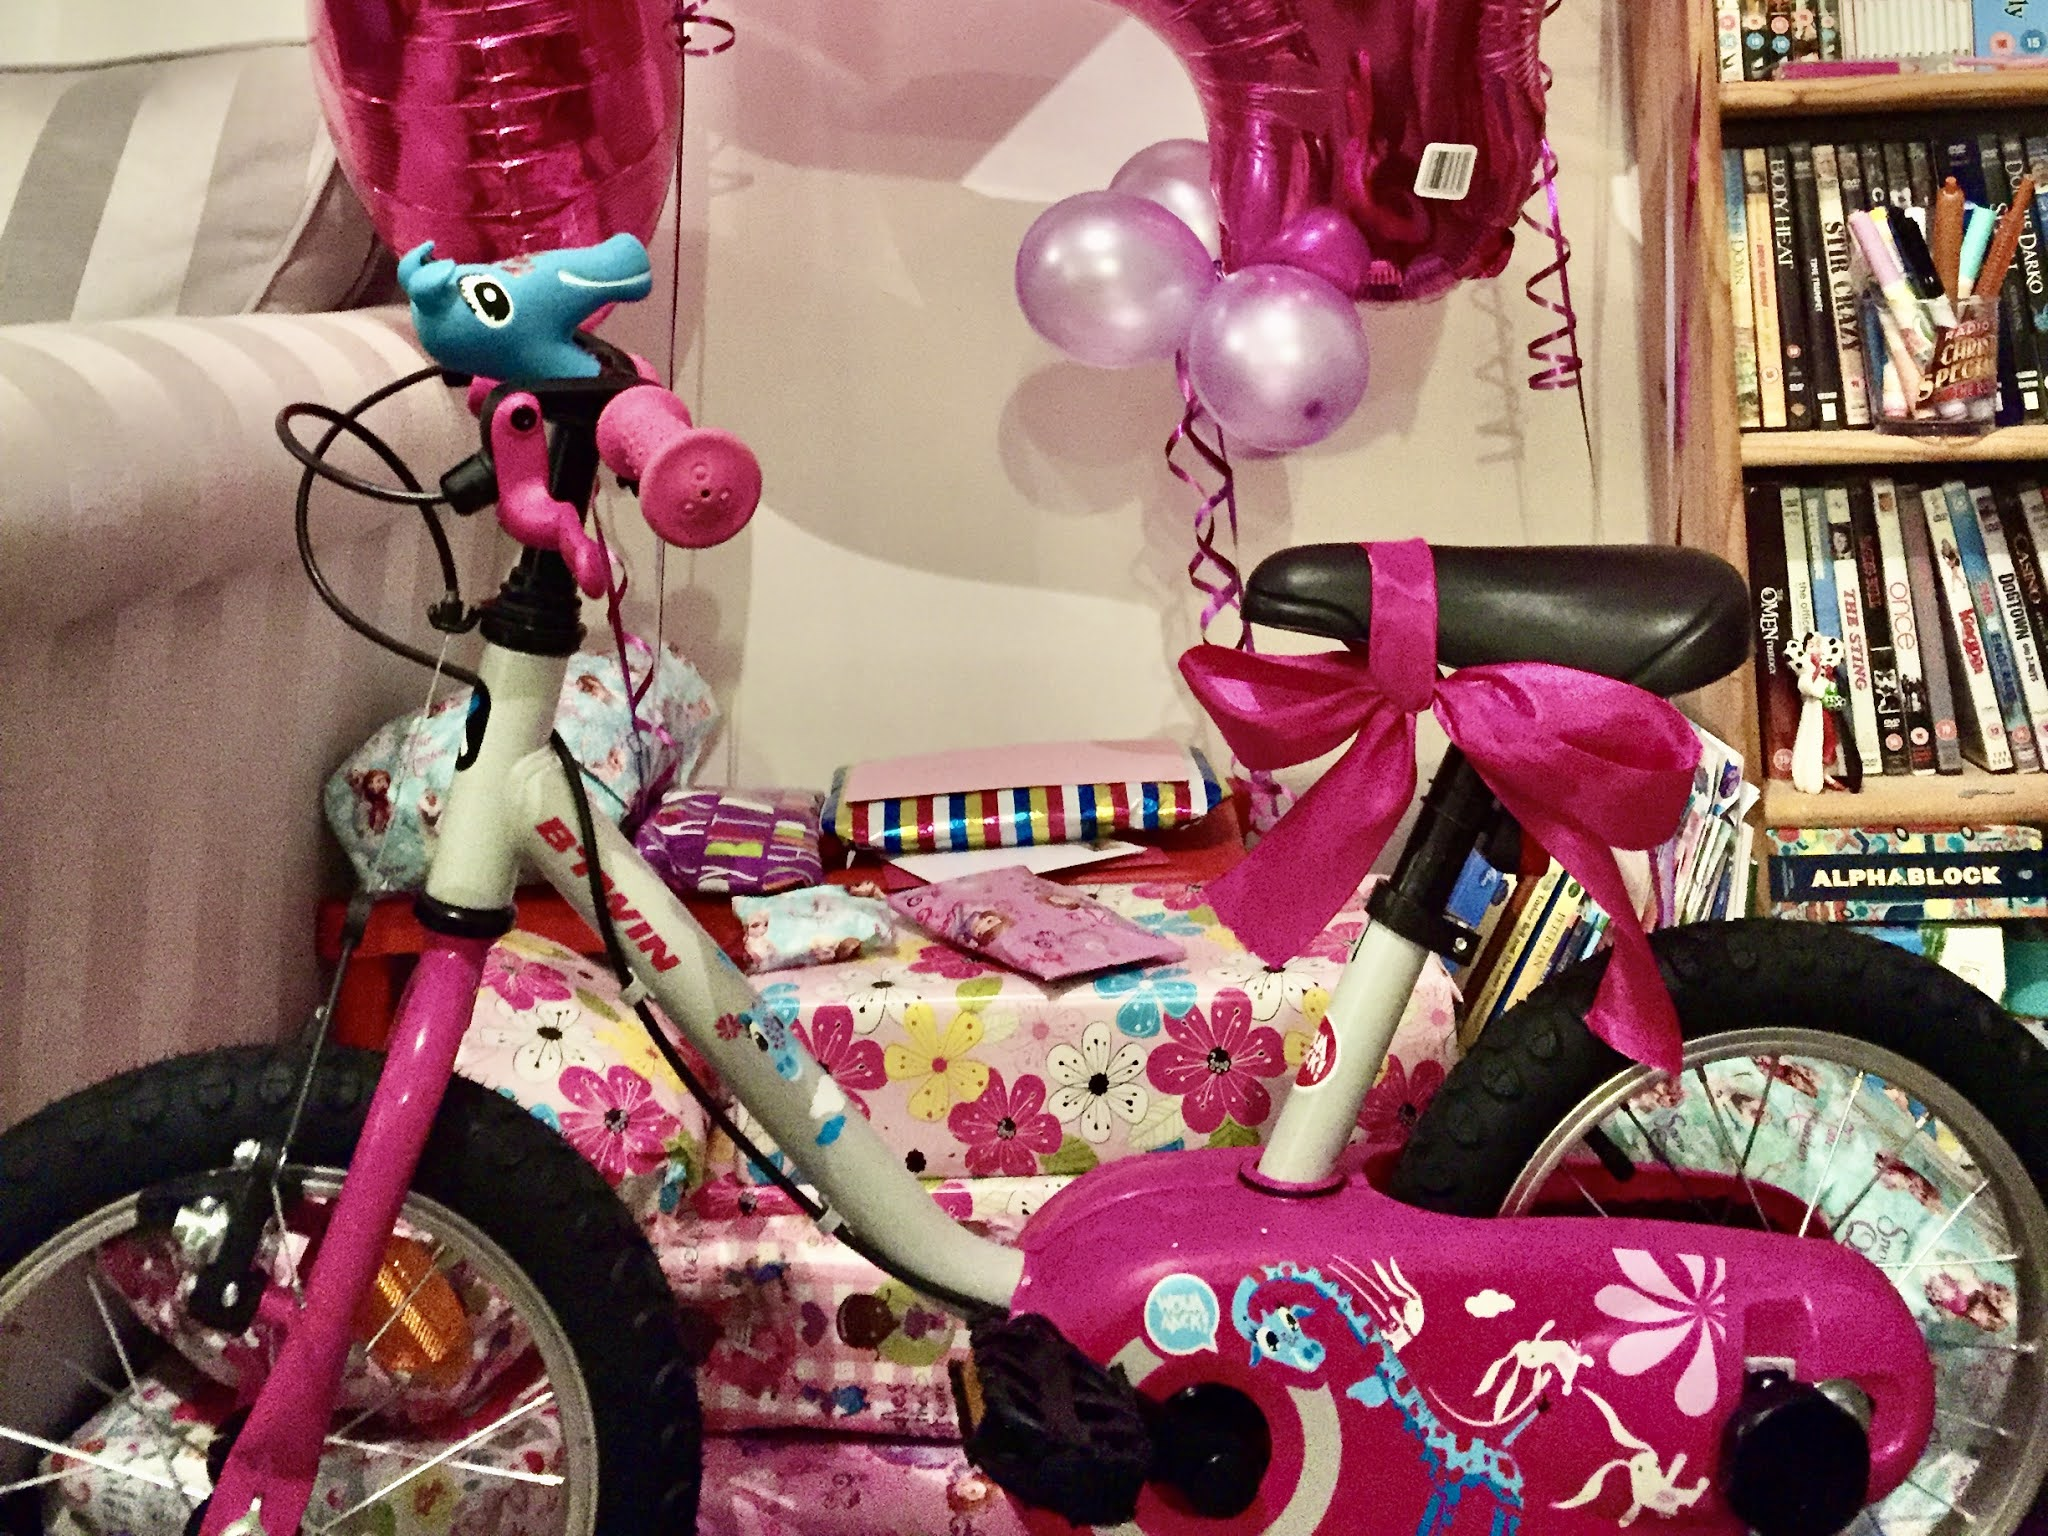 a pile of presents and balloons for a 4th birthday with a bike at the front